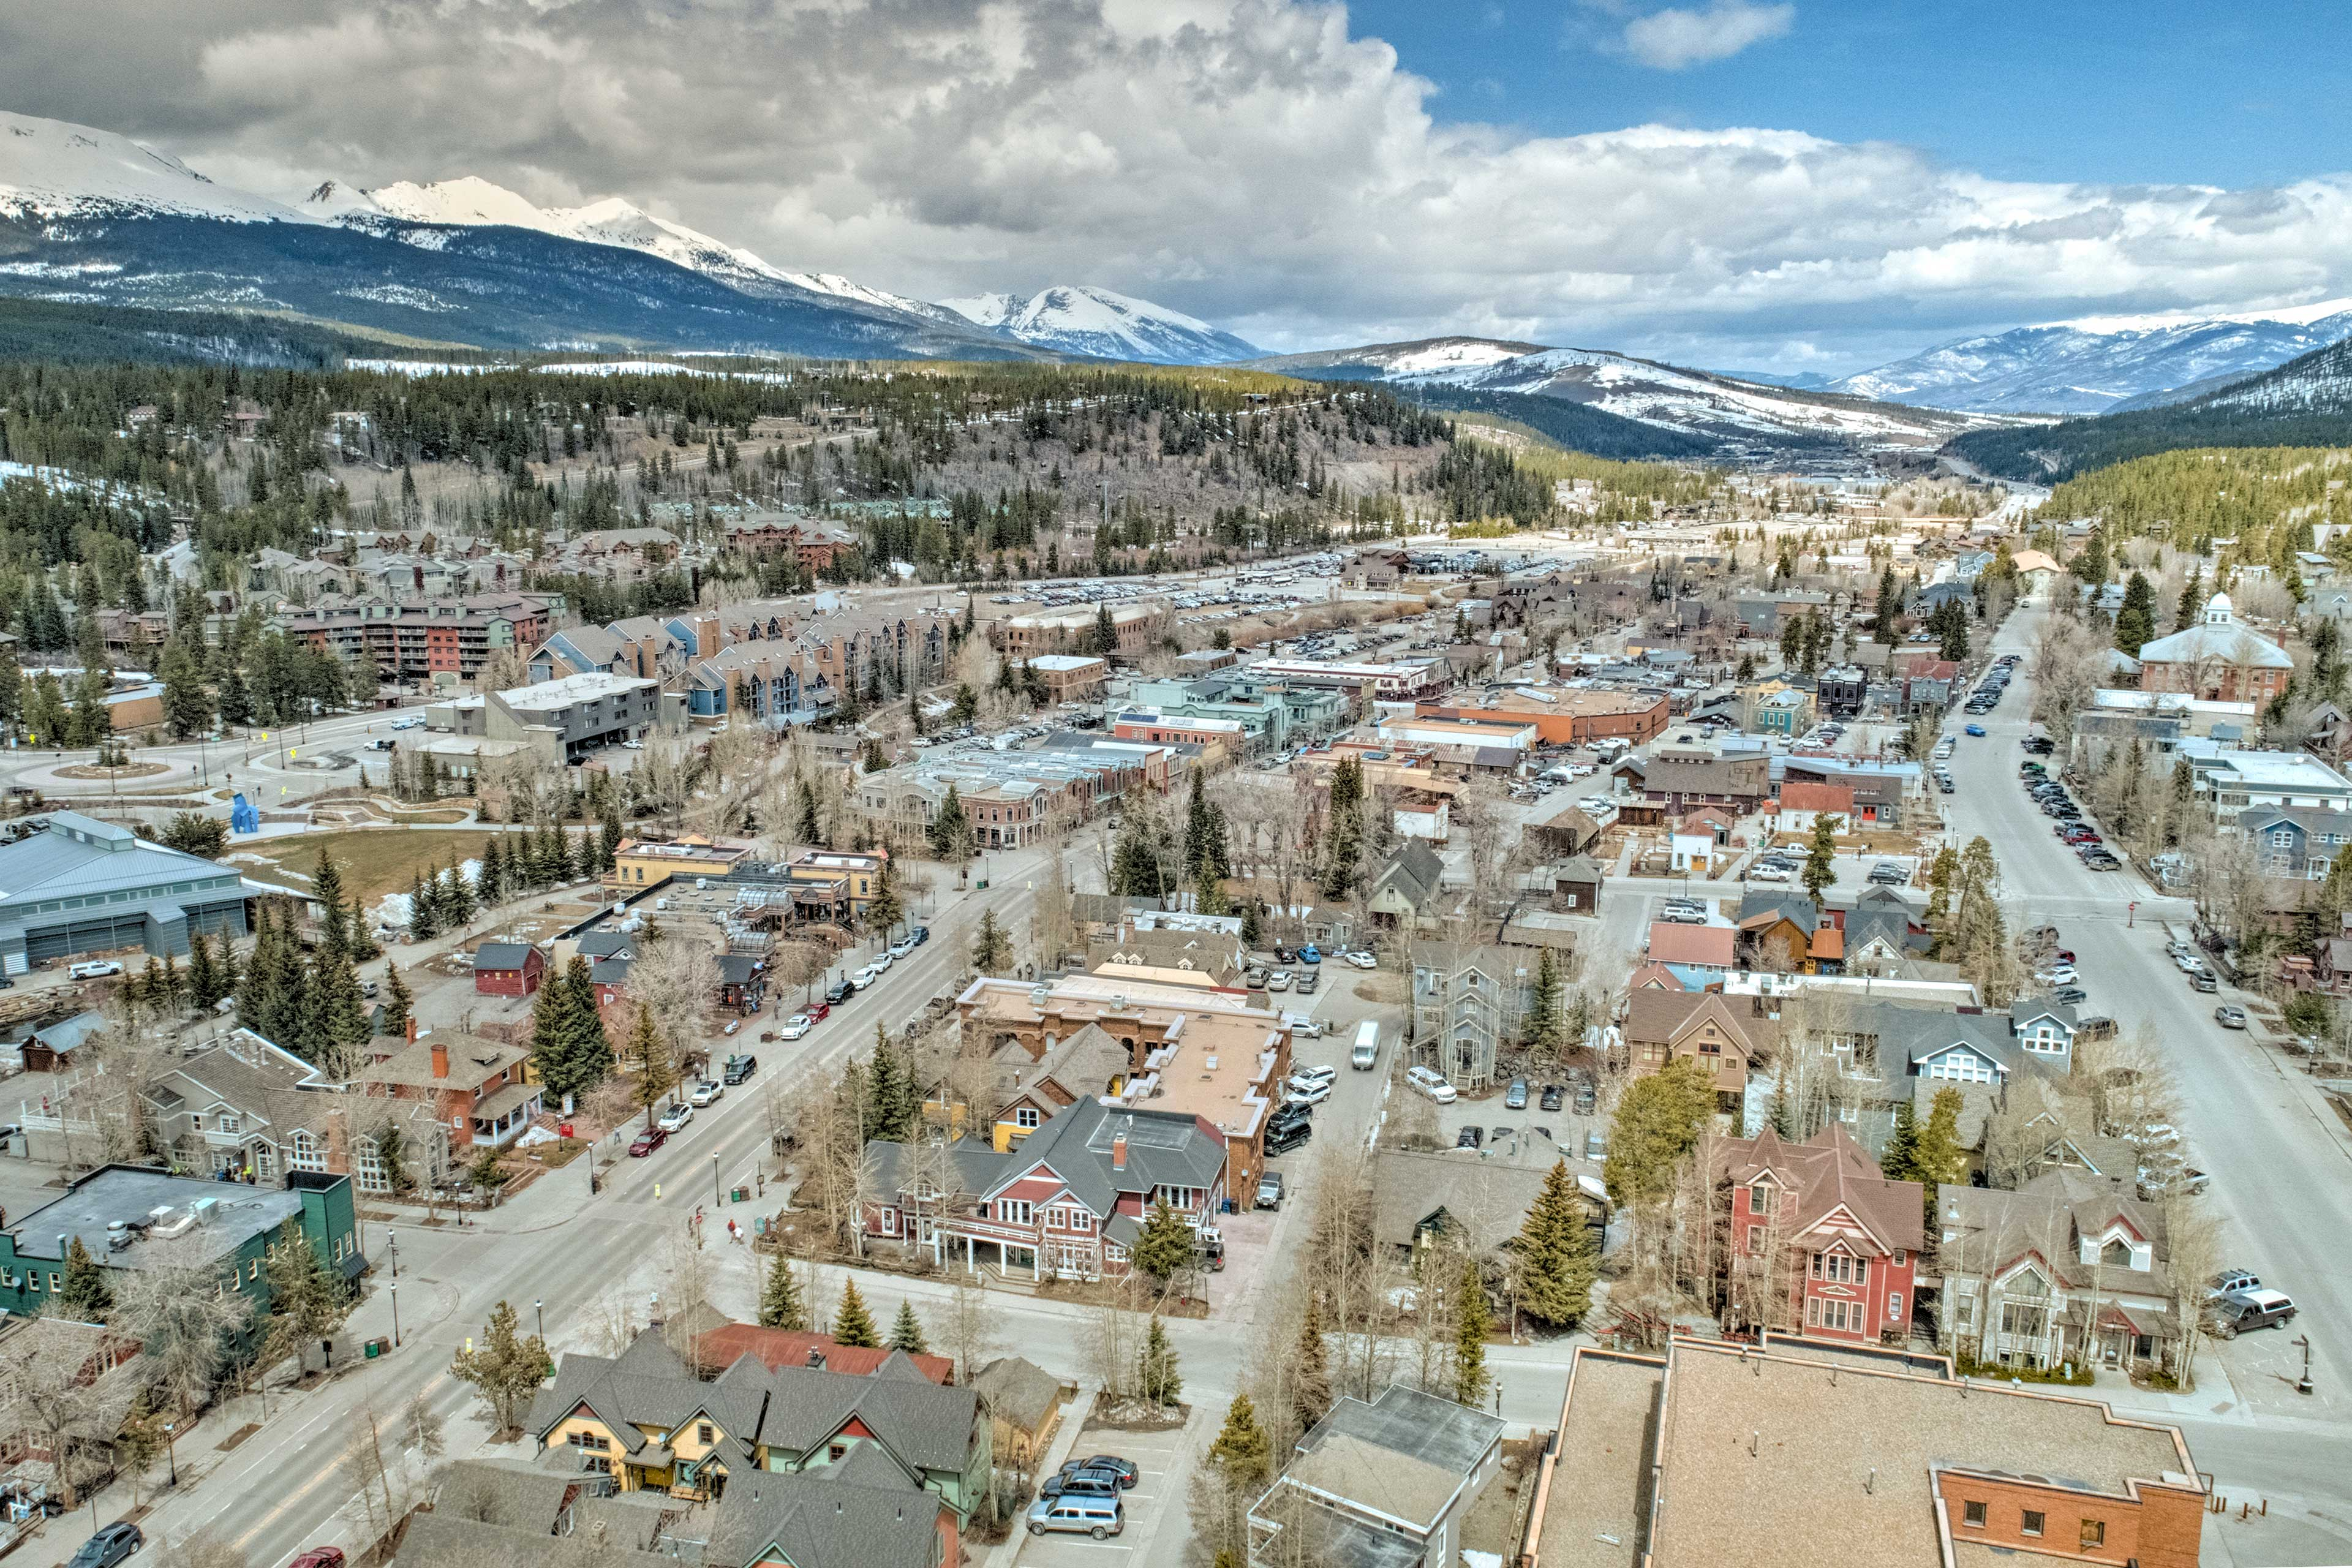 There's plenty to see and do in downtown Breck!